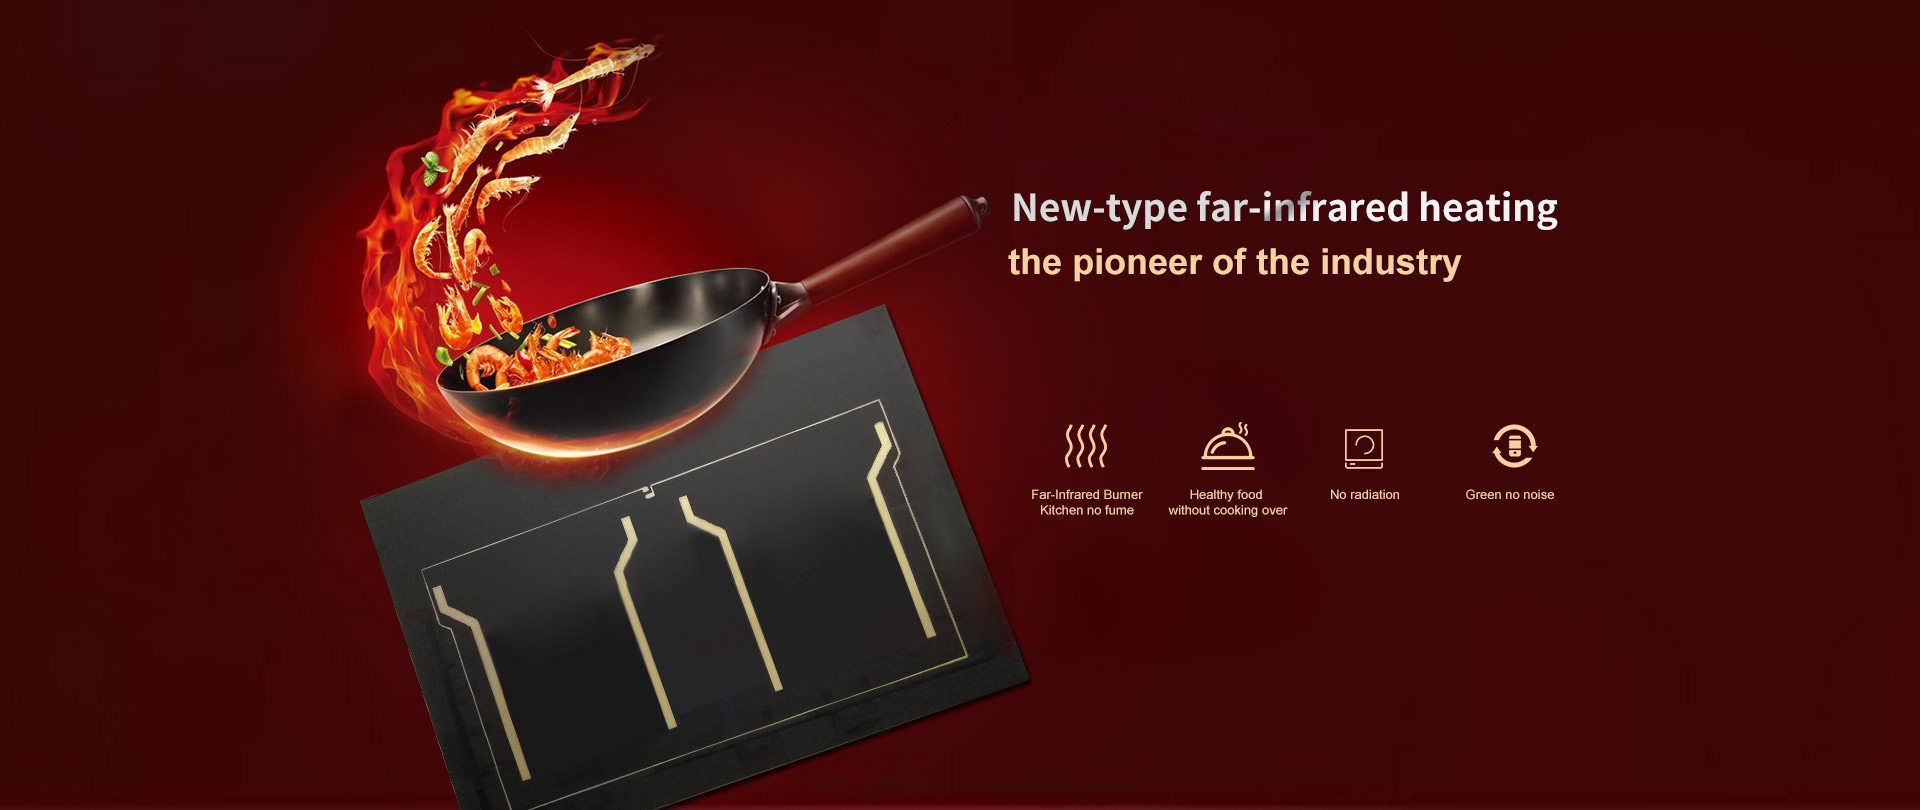 New-type far-infrared heating,  the pioneer of the industry